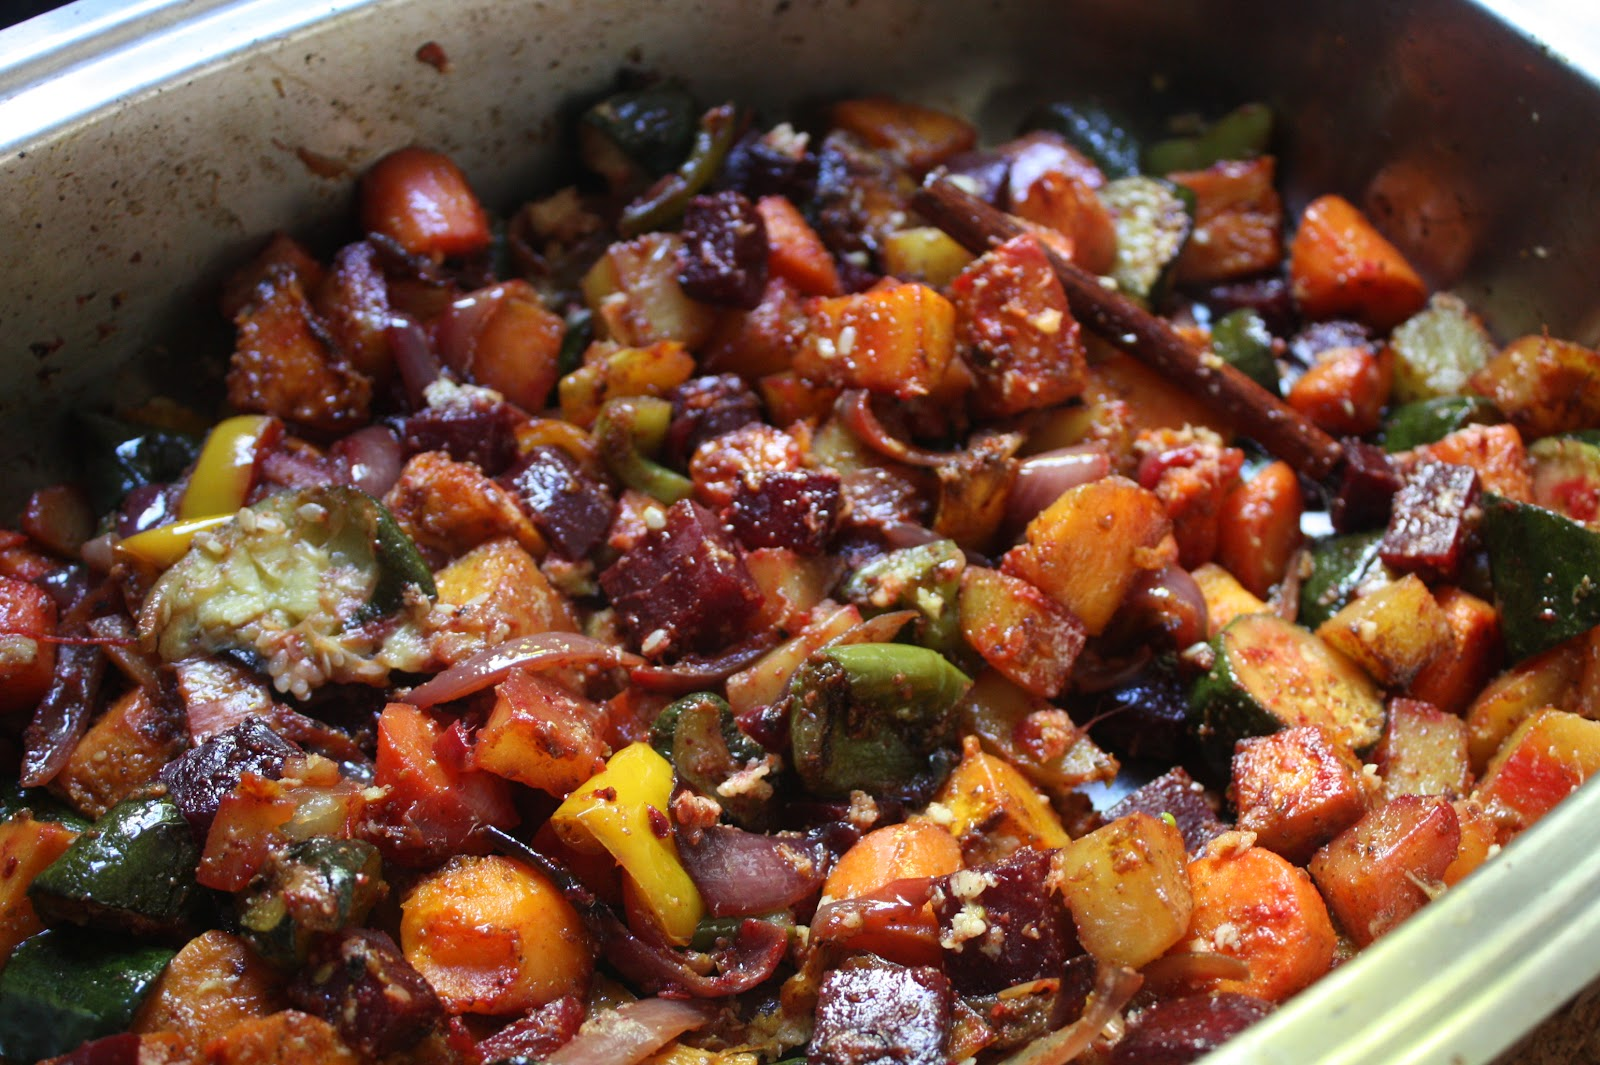 The Laughing Gastronome: Oven Roasted Vegetable Curry